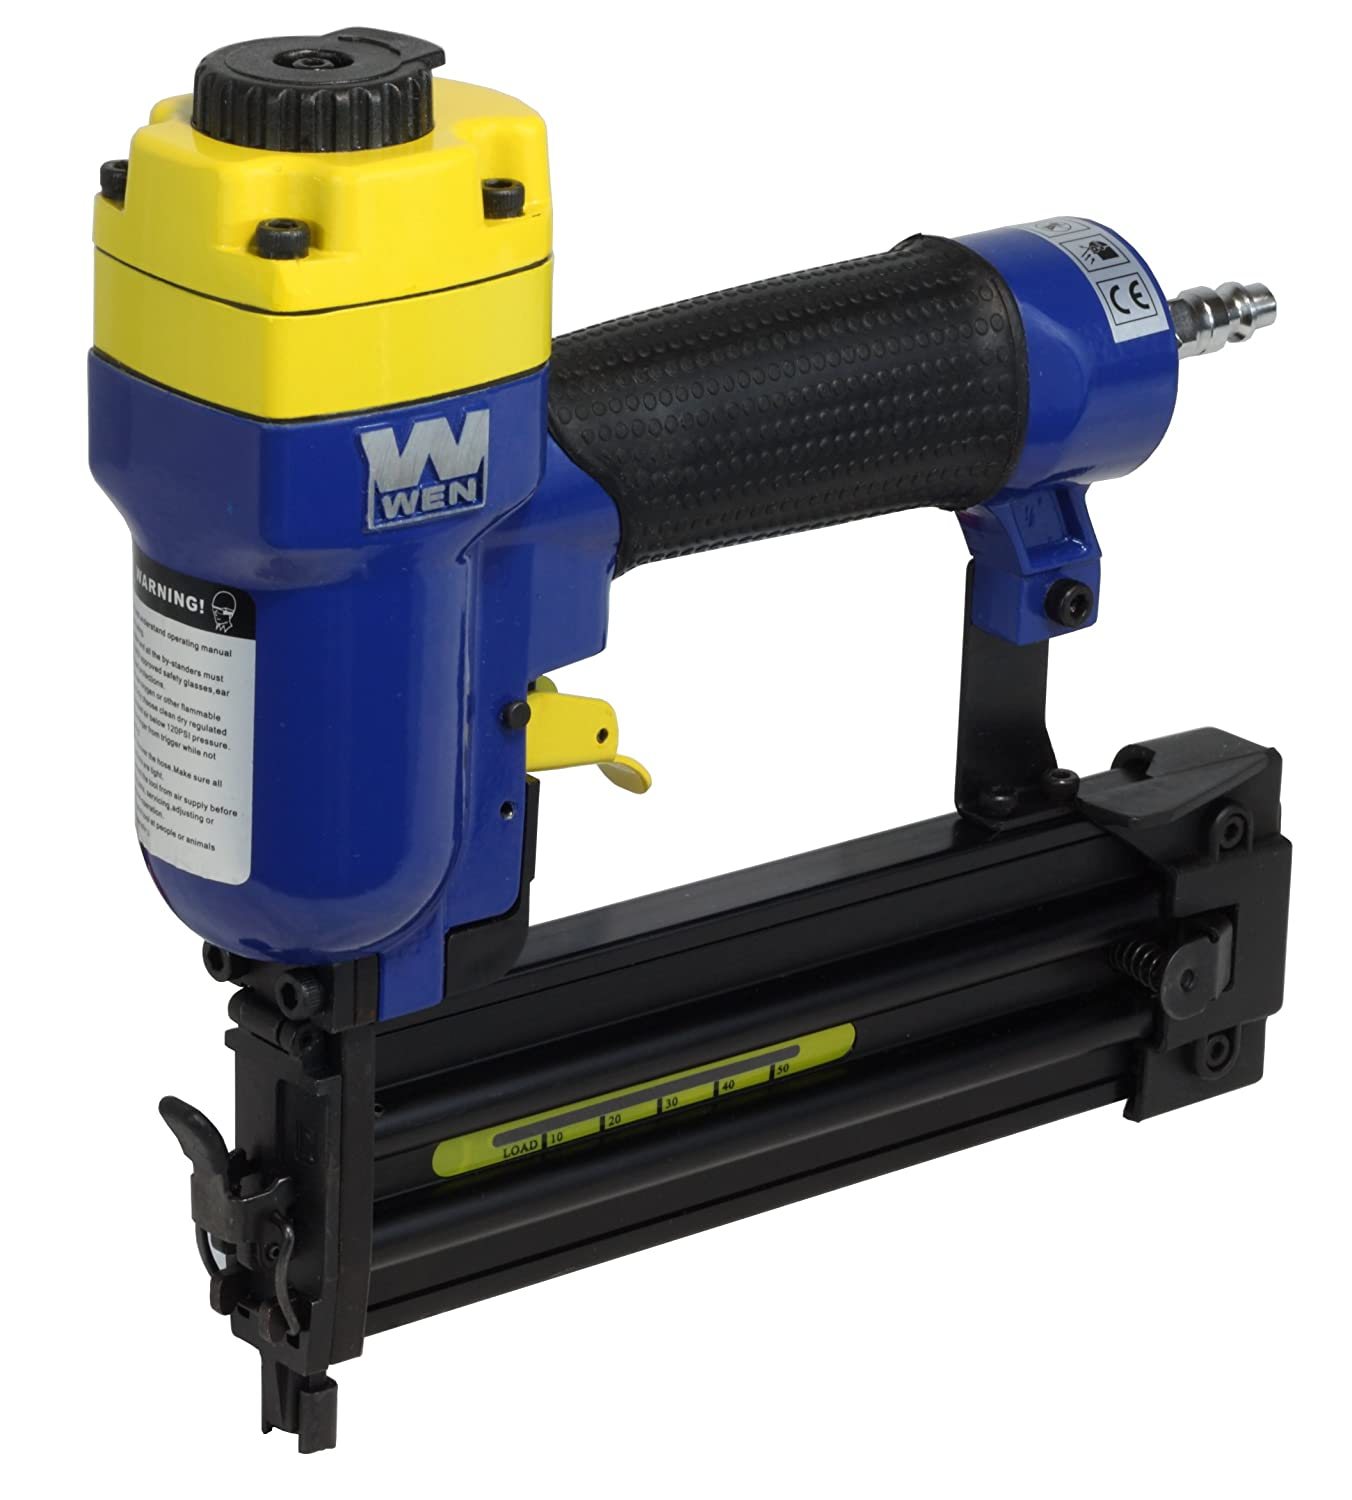 8. <strong>WEN 61720 Brad Nailer - Cheapest Brad Nailer</strong>